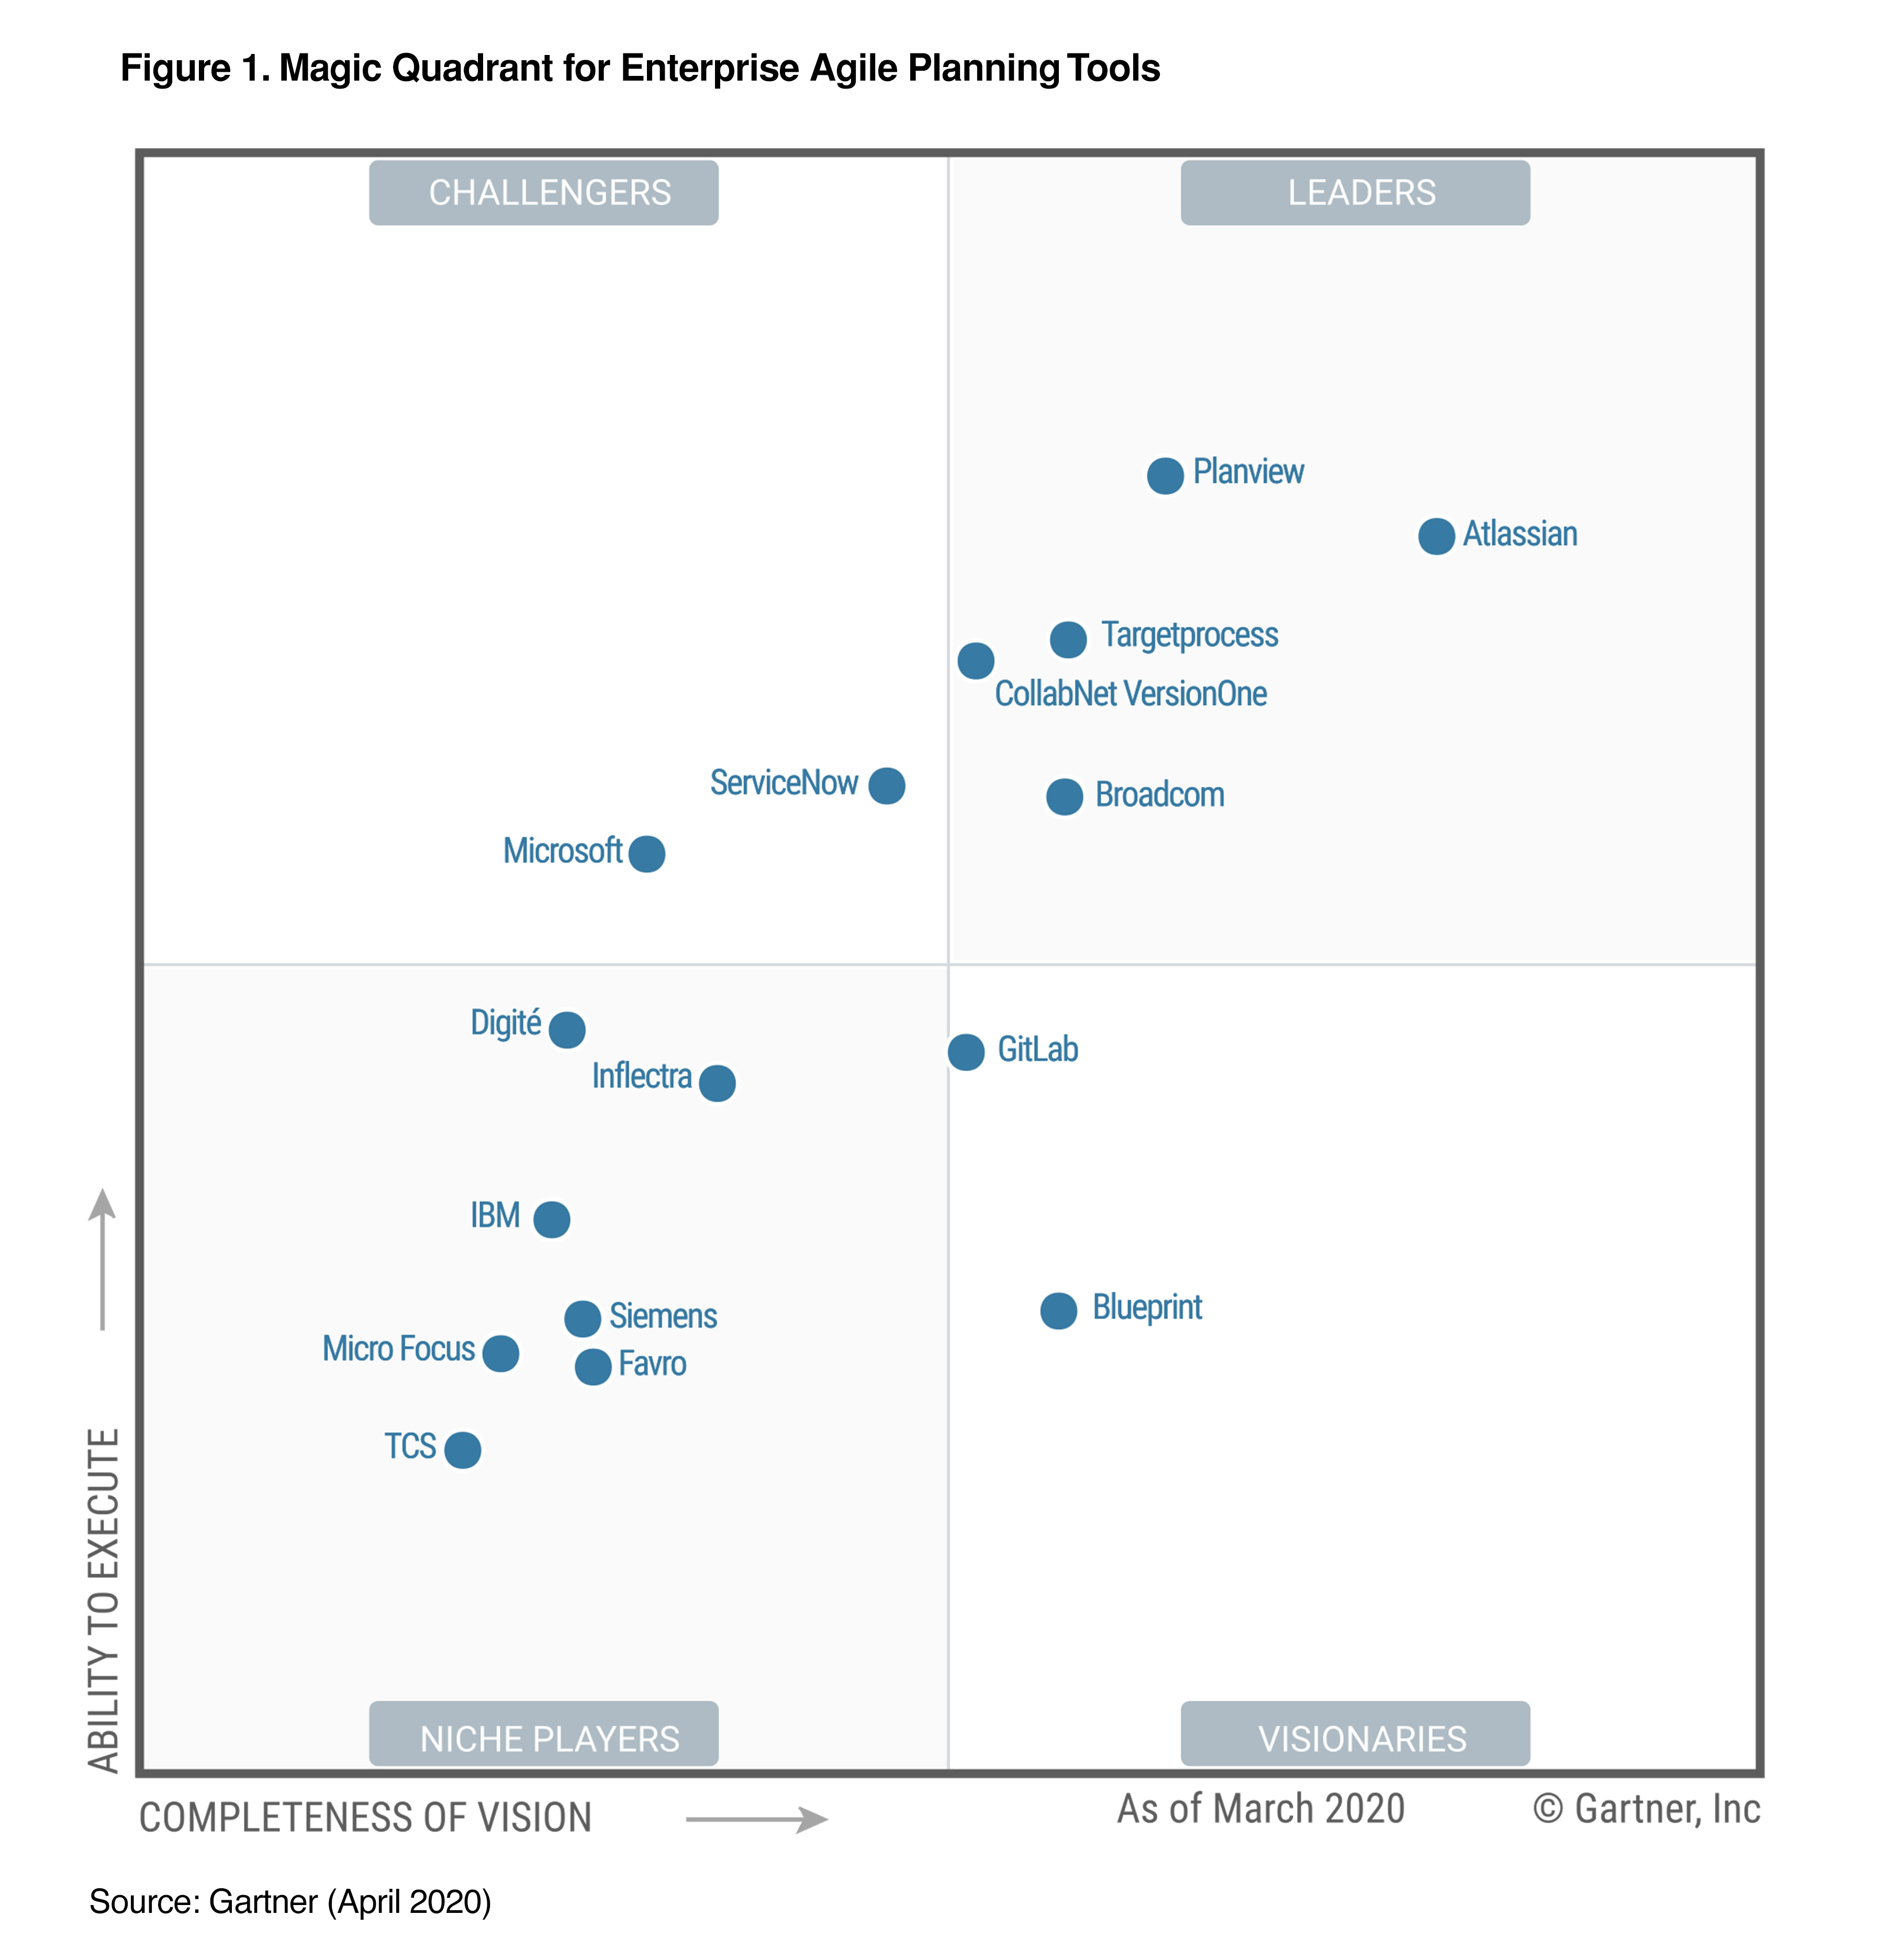 Magic Quadrant for Enterprise Agile Planning Tools